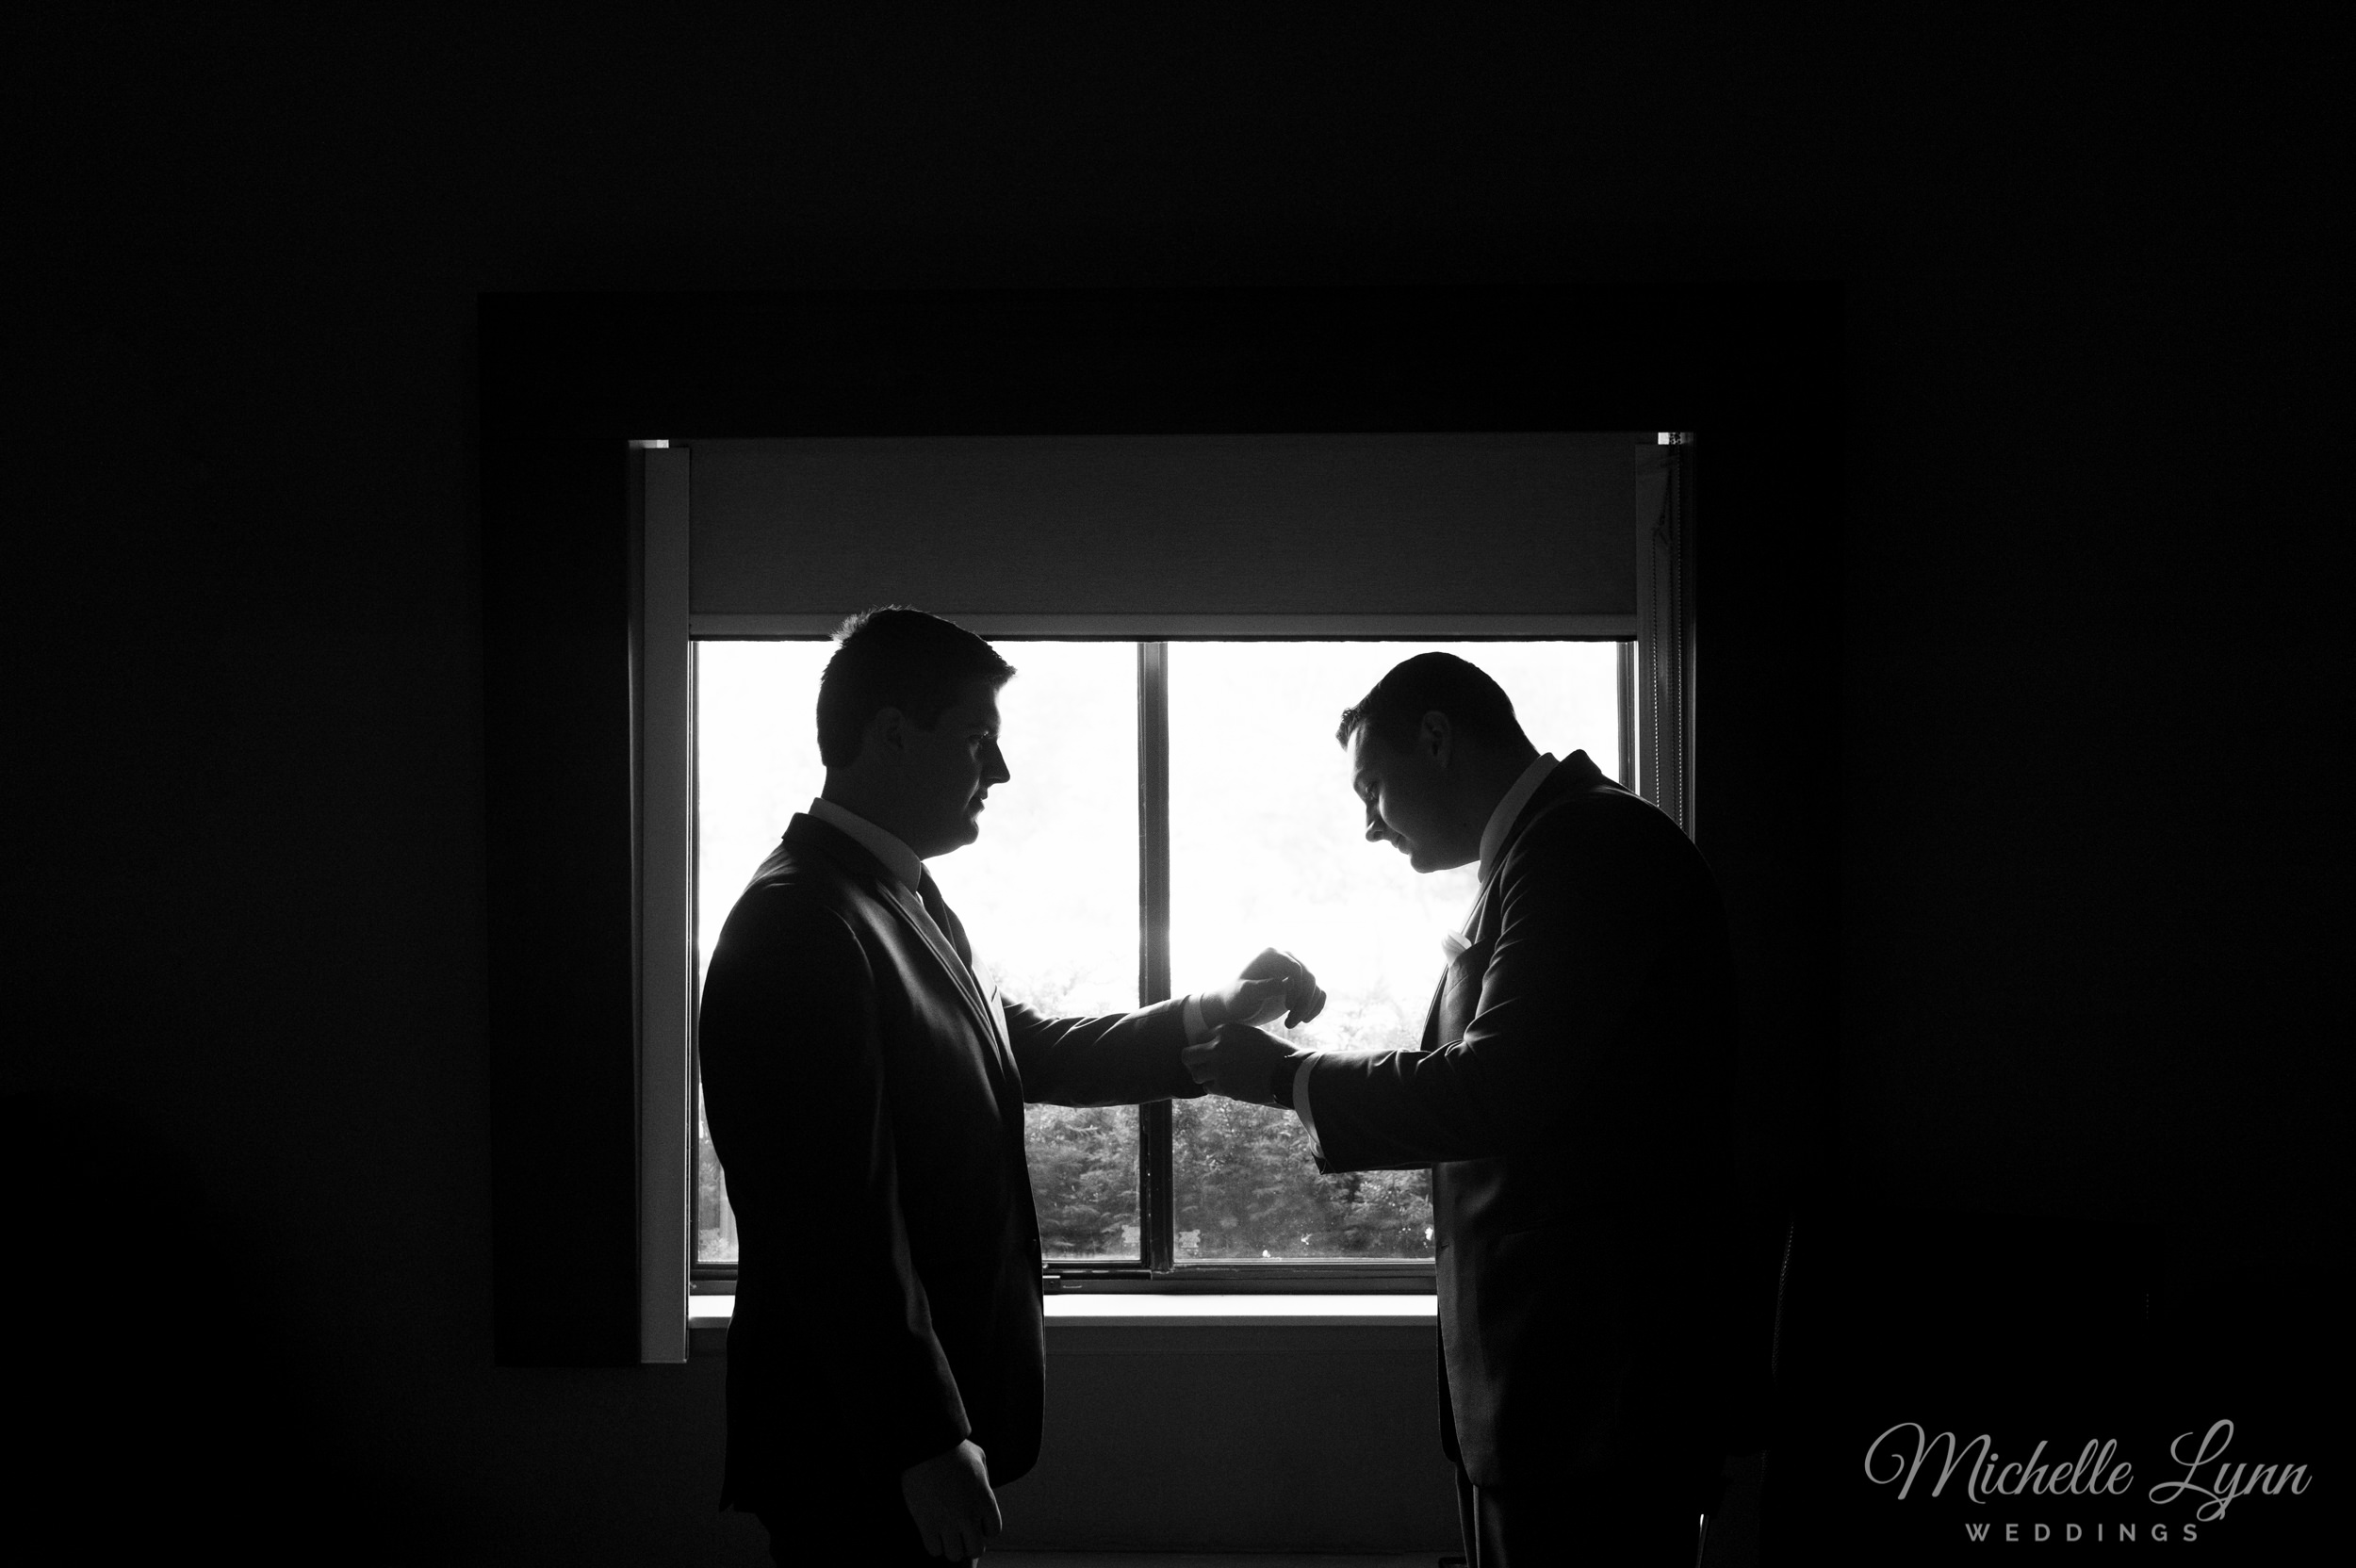 mlw-loft-at-sweet-water-country-club-wedding-photography-12.jpg